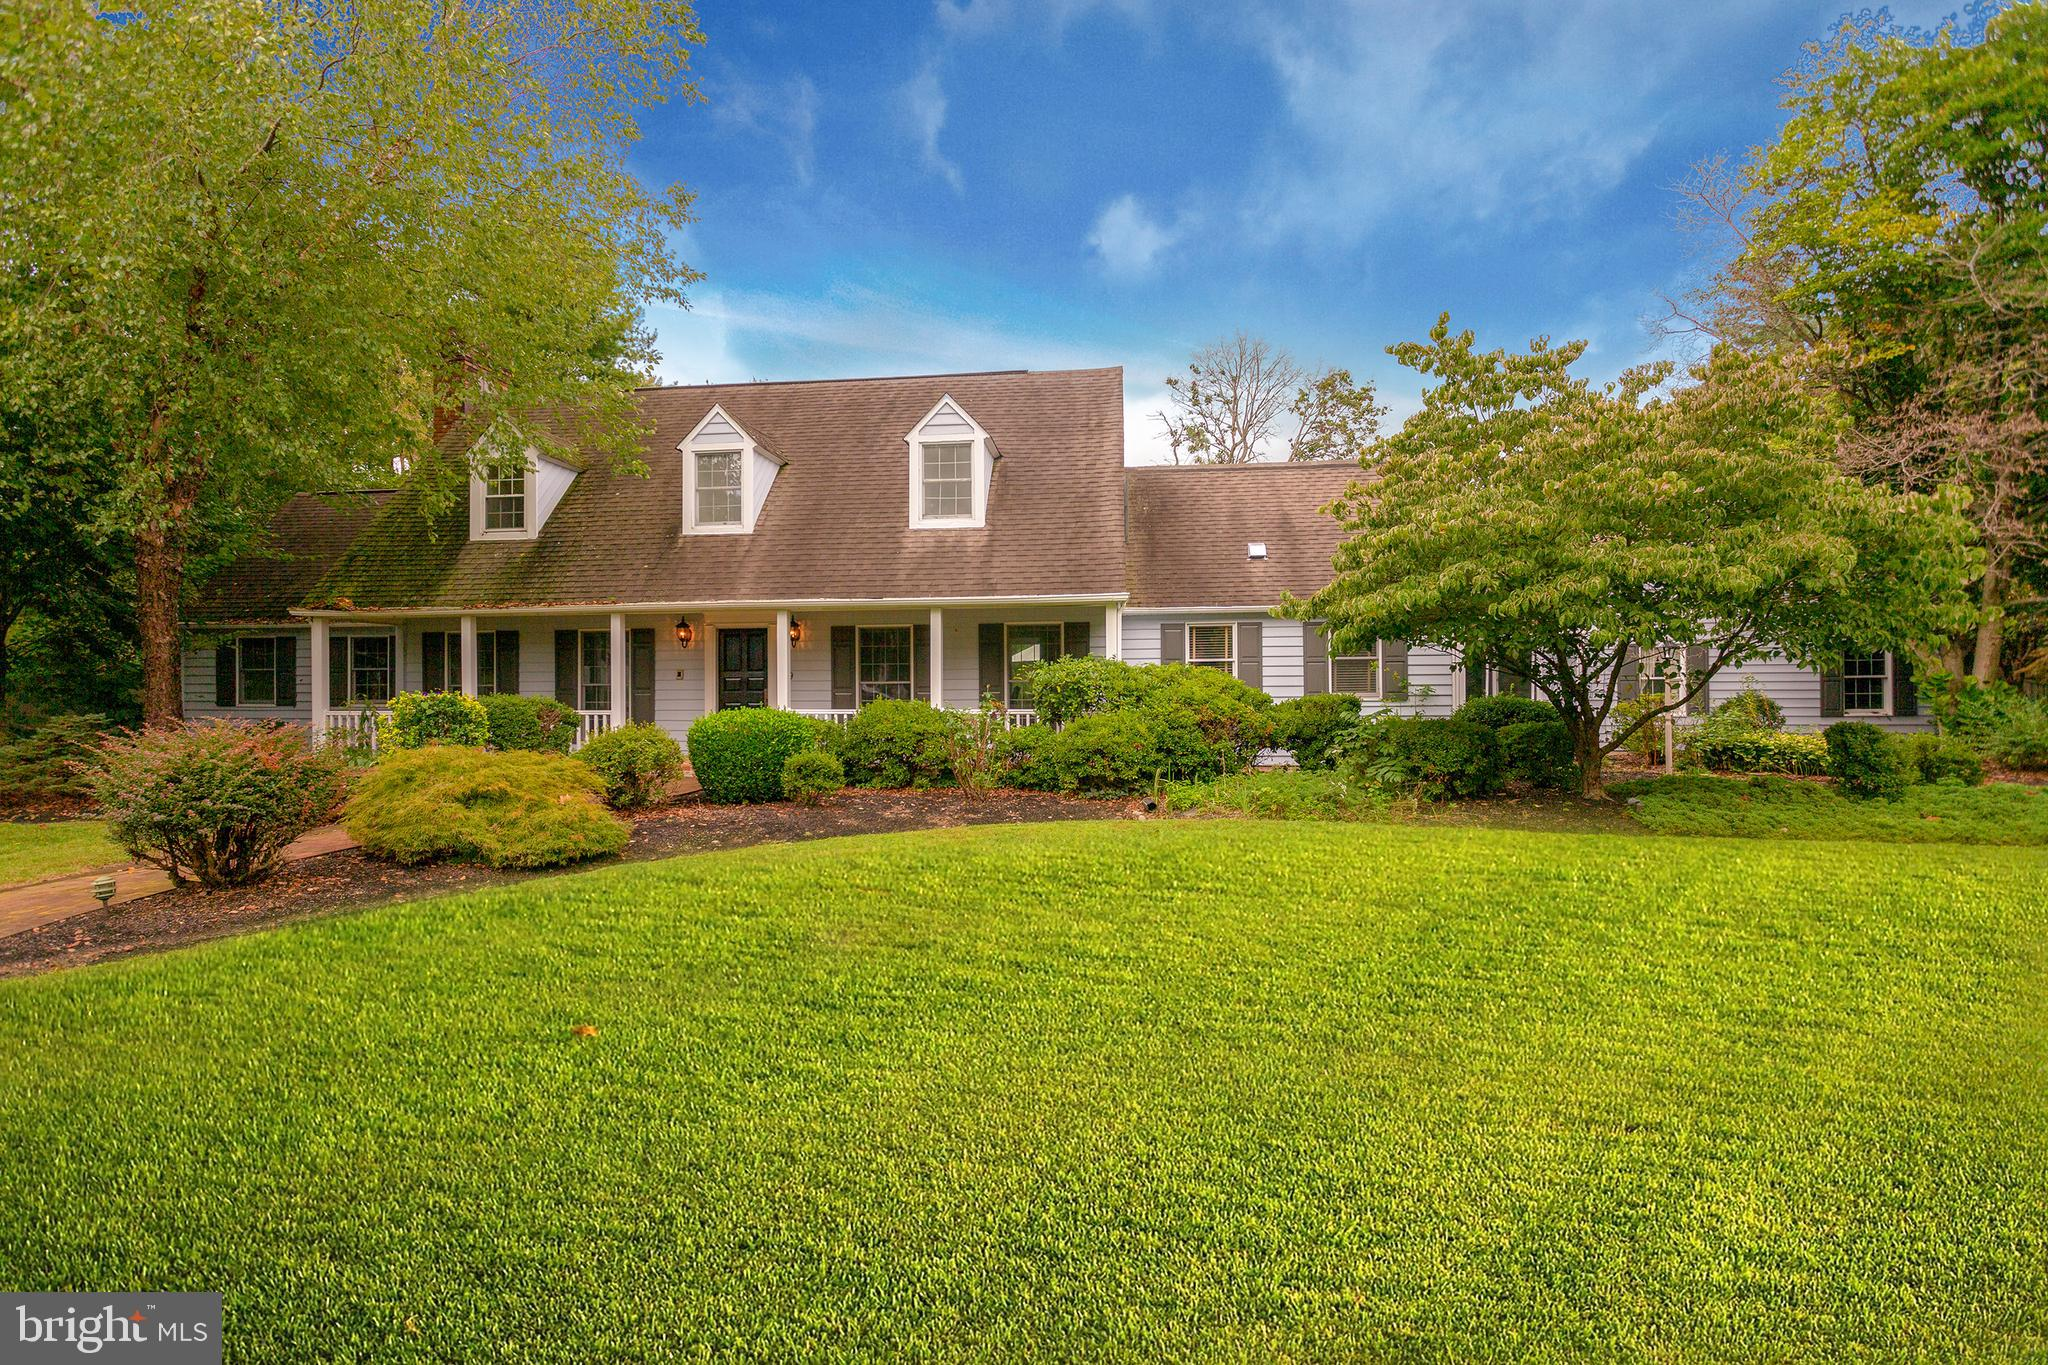 19 MILYKO DRIVE, WASHINGTON CROSSING, PA 18977